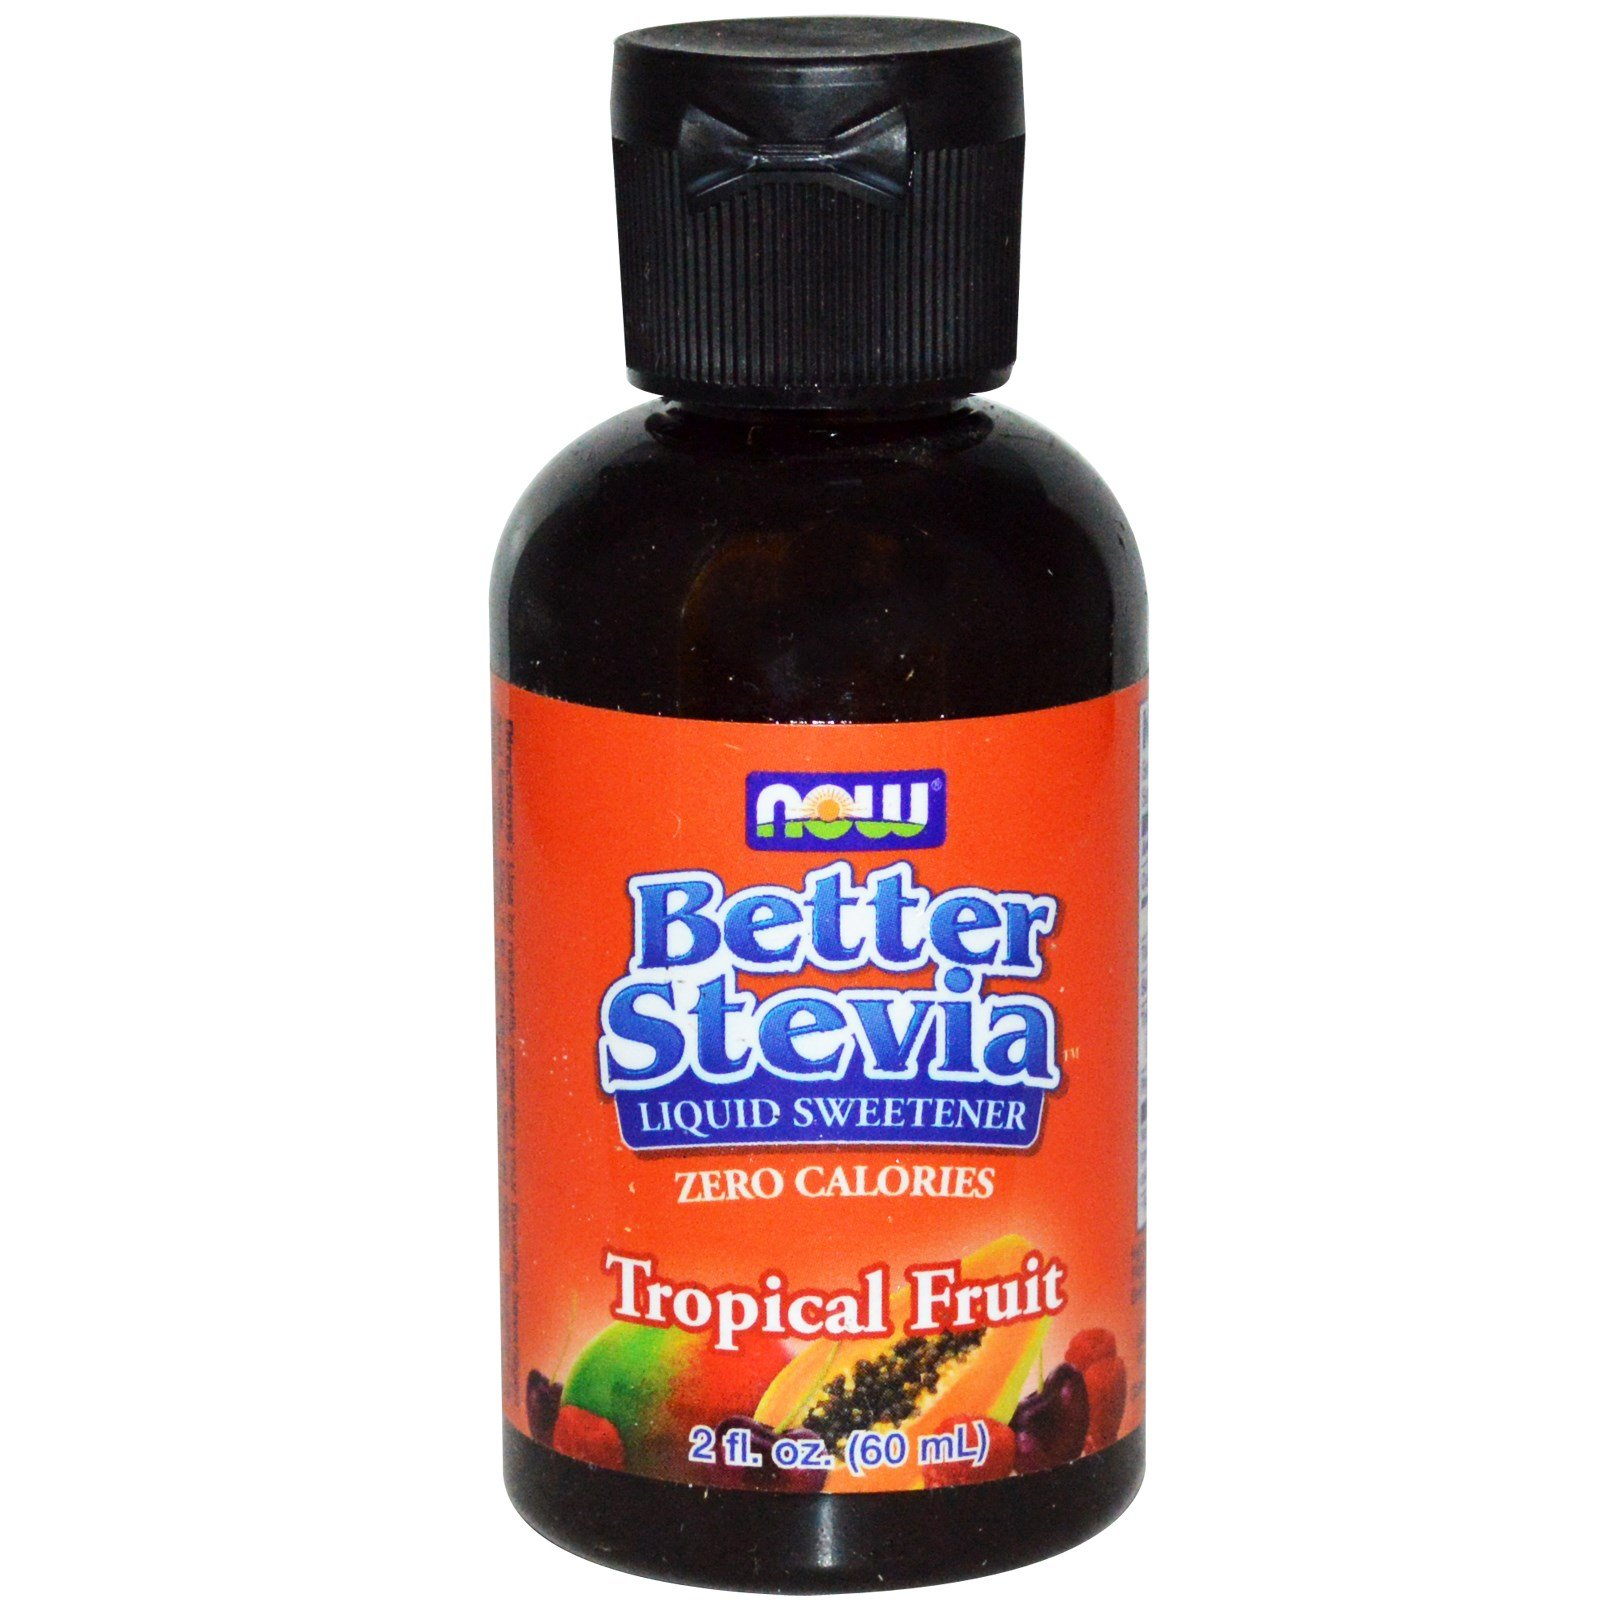 Now Foods, Better Stevia Liquid Sweetener, Tropical Fruit, 2 fl oz (60 ml) - 2PC by NOW Foods (Image #1)